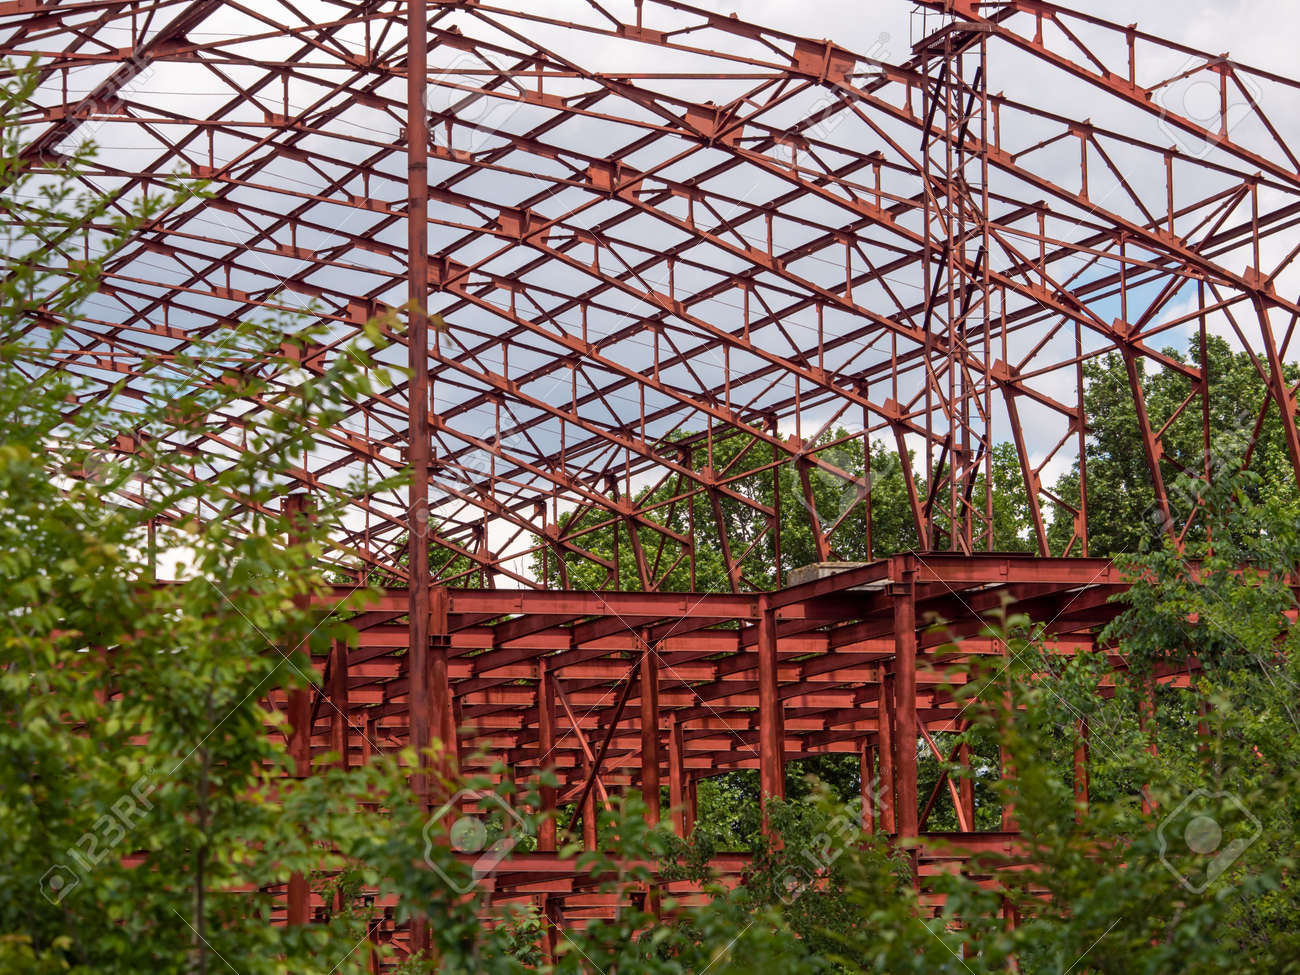 Construction of a huge red frame for a shopping center near the city. - 149743992